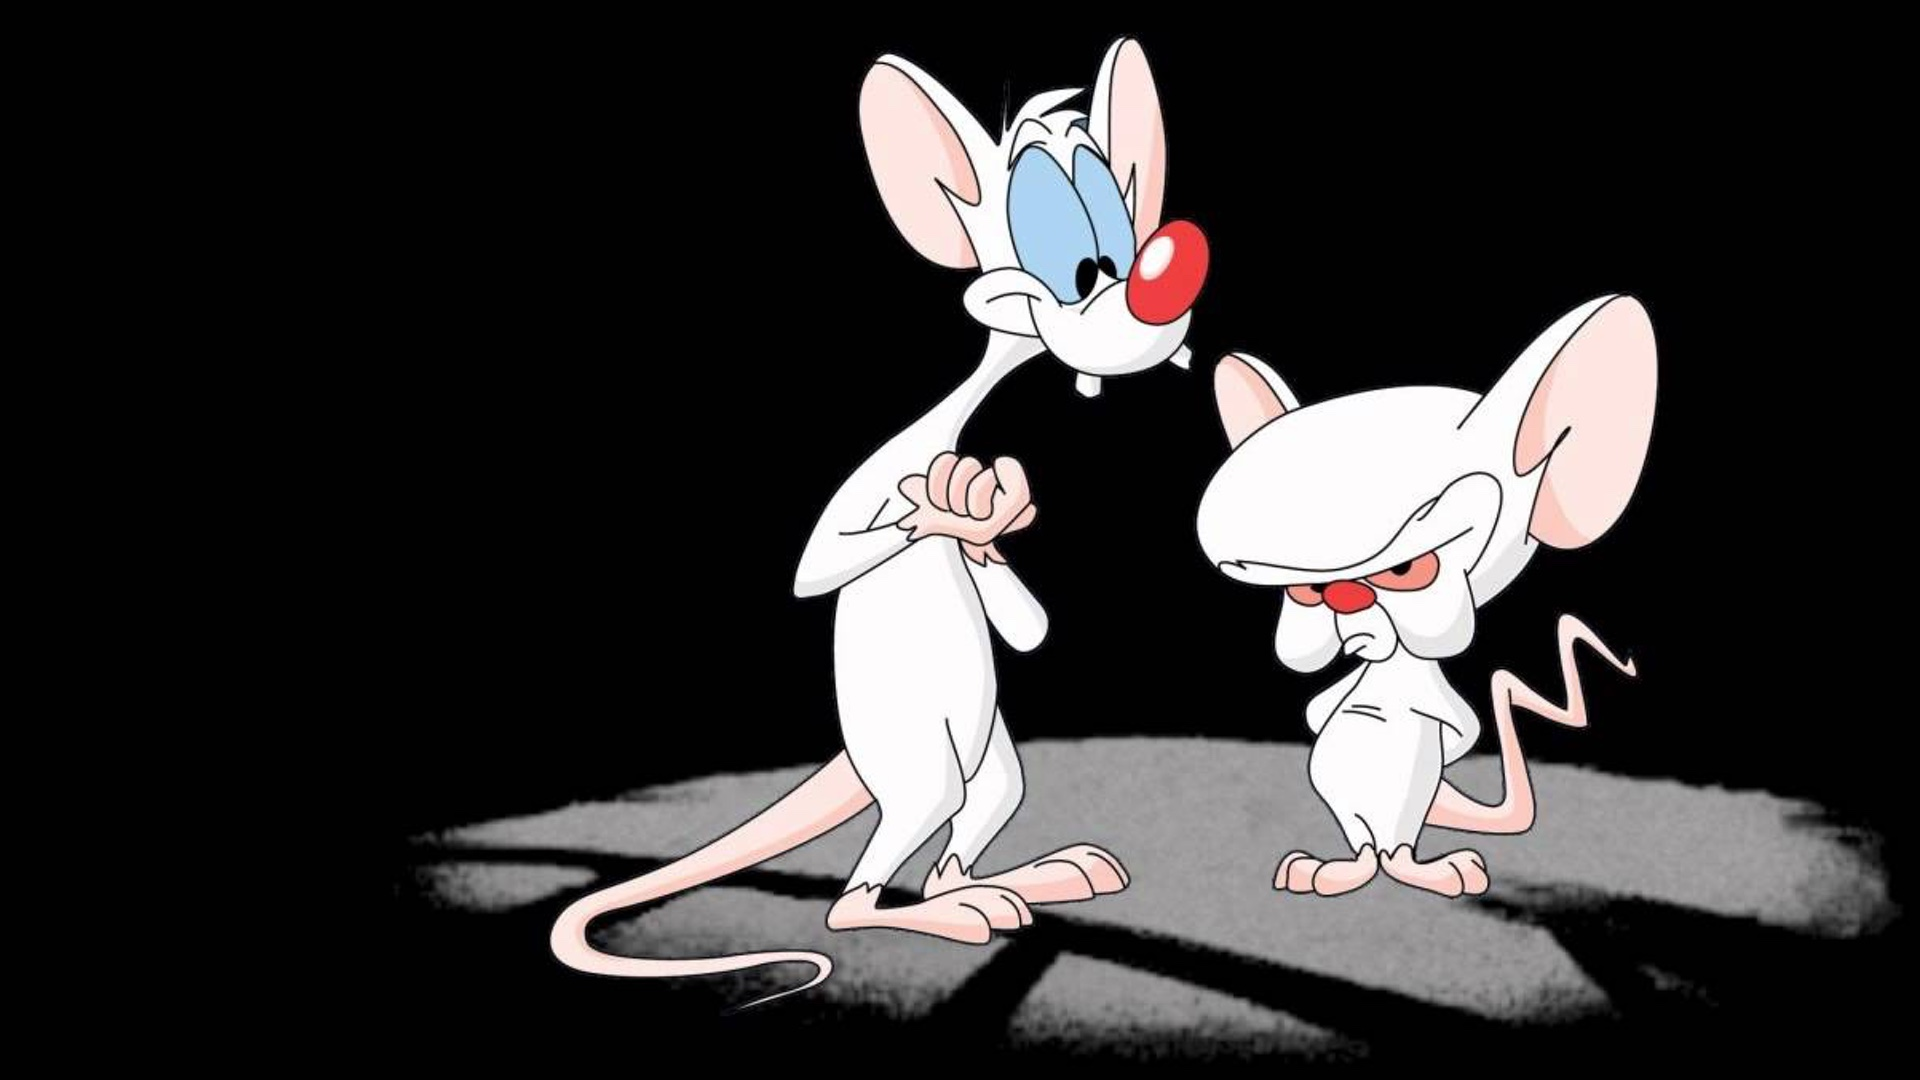 Artists Take On What A Live Action Pinky And The Brain Might Look